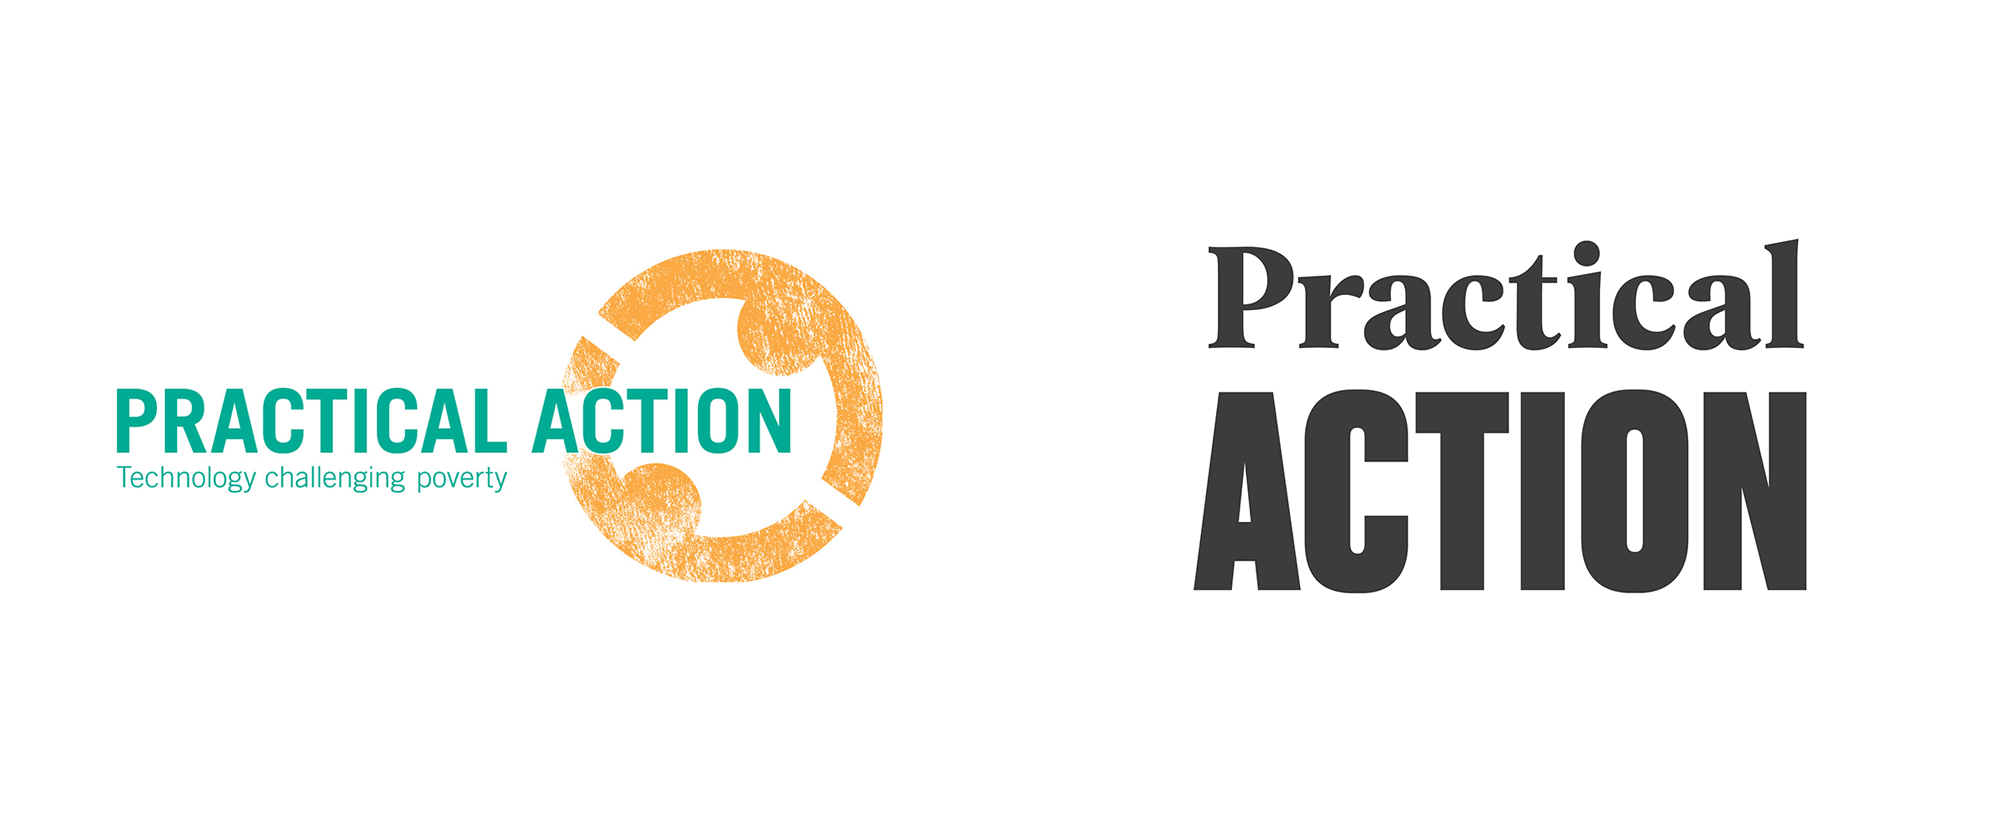 New Logo and Identity for Practical Action by NB